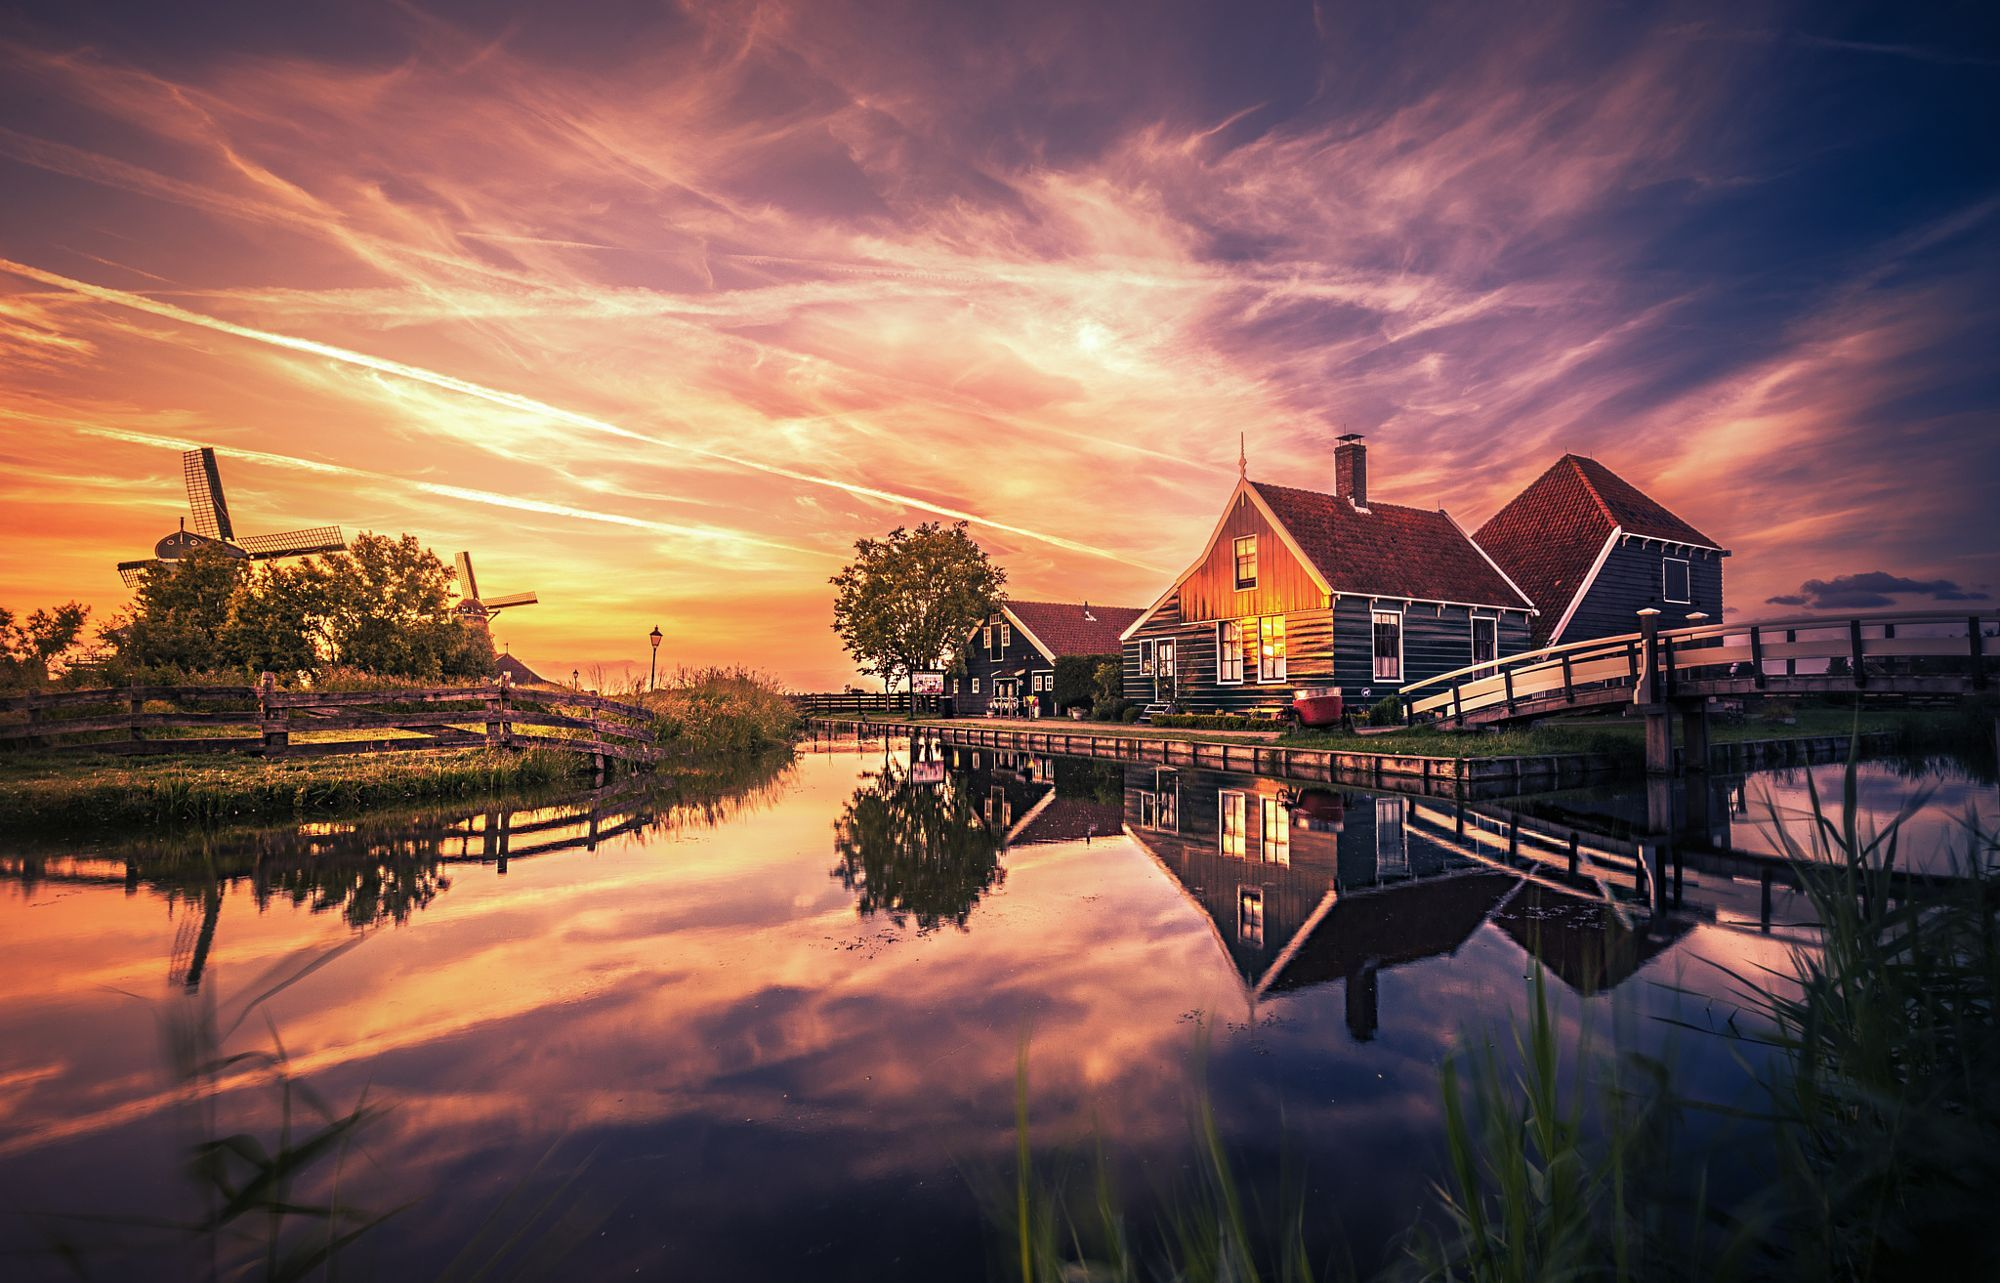 Just a stone's throw away from Amsterdam, Zaanse Schans gives a glimpse of the traditional Dutch way of life in the 17th and 18th centuries. Packed with wooden windmills, barns, houses and museums built in the typical Dutch wooden architectural style.